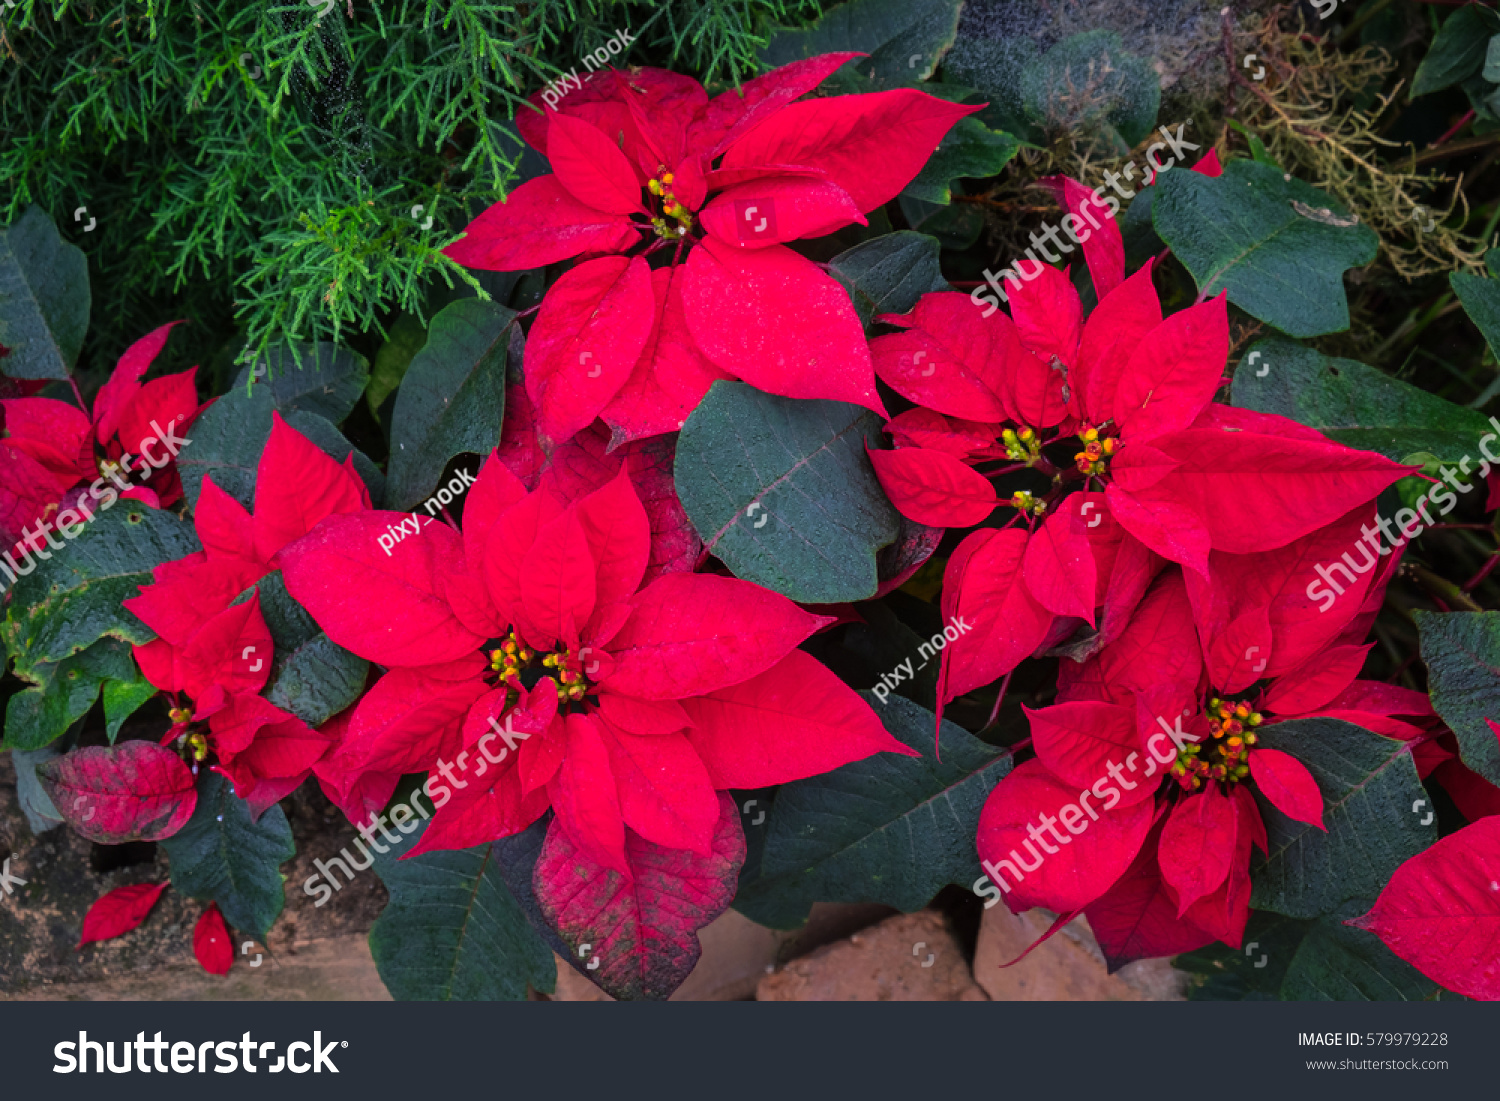 or red poinsettia - photo #22